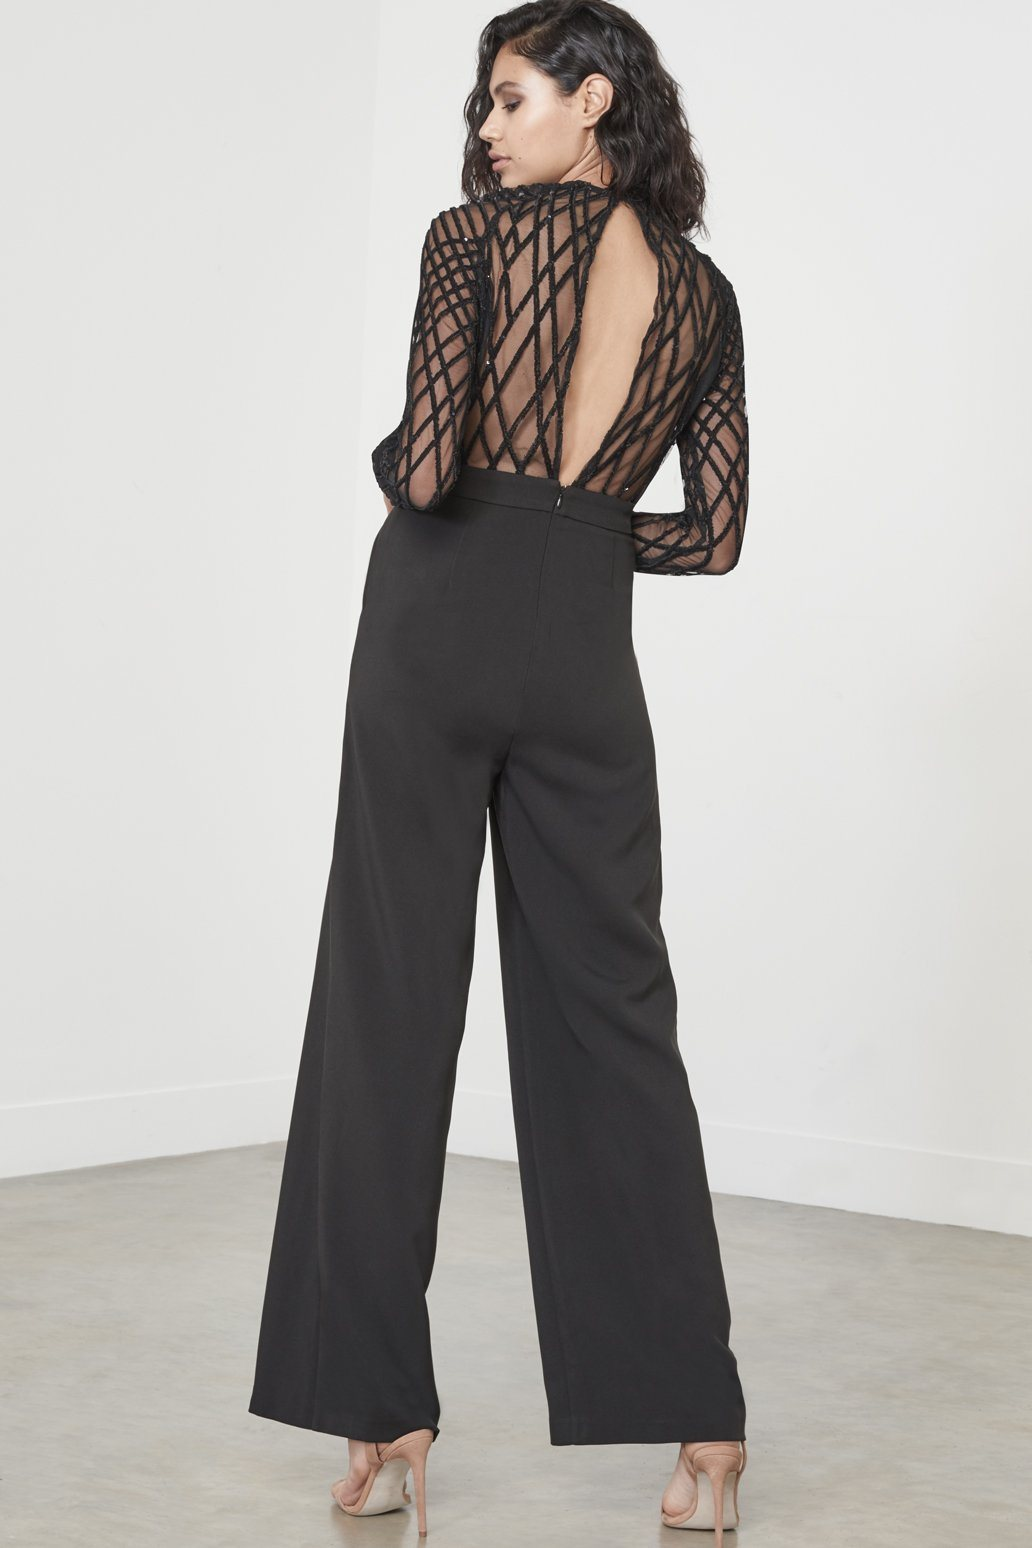 Black Cross Hatch Velvet Sequin Mesh Jumpsuit